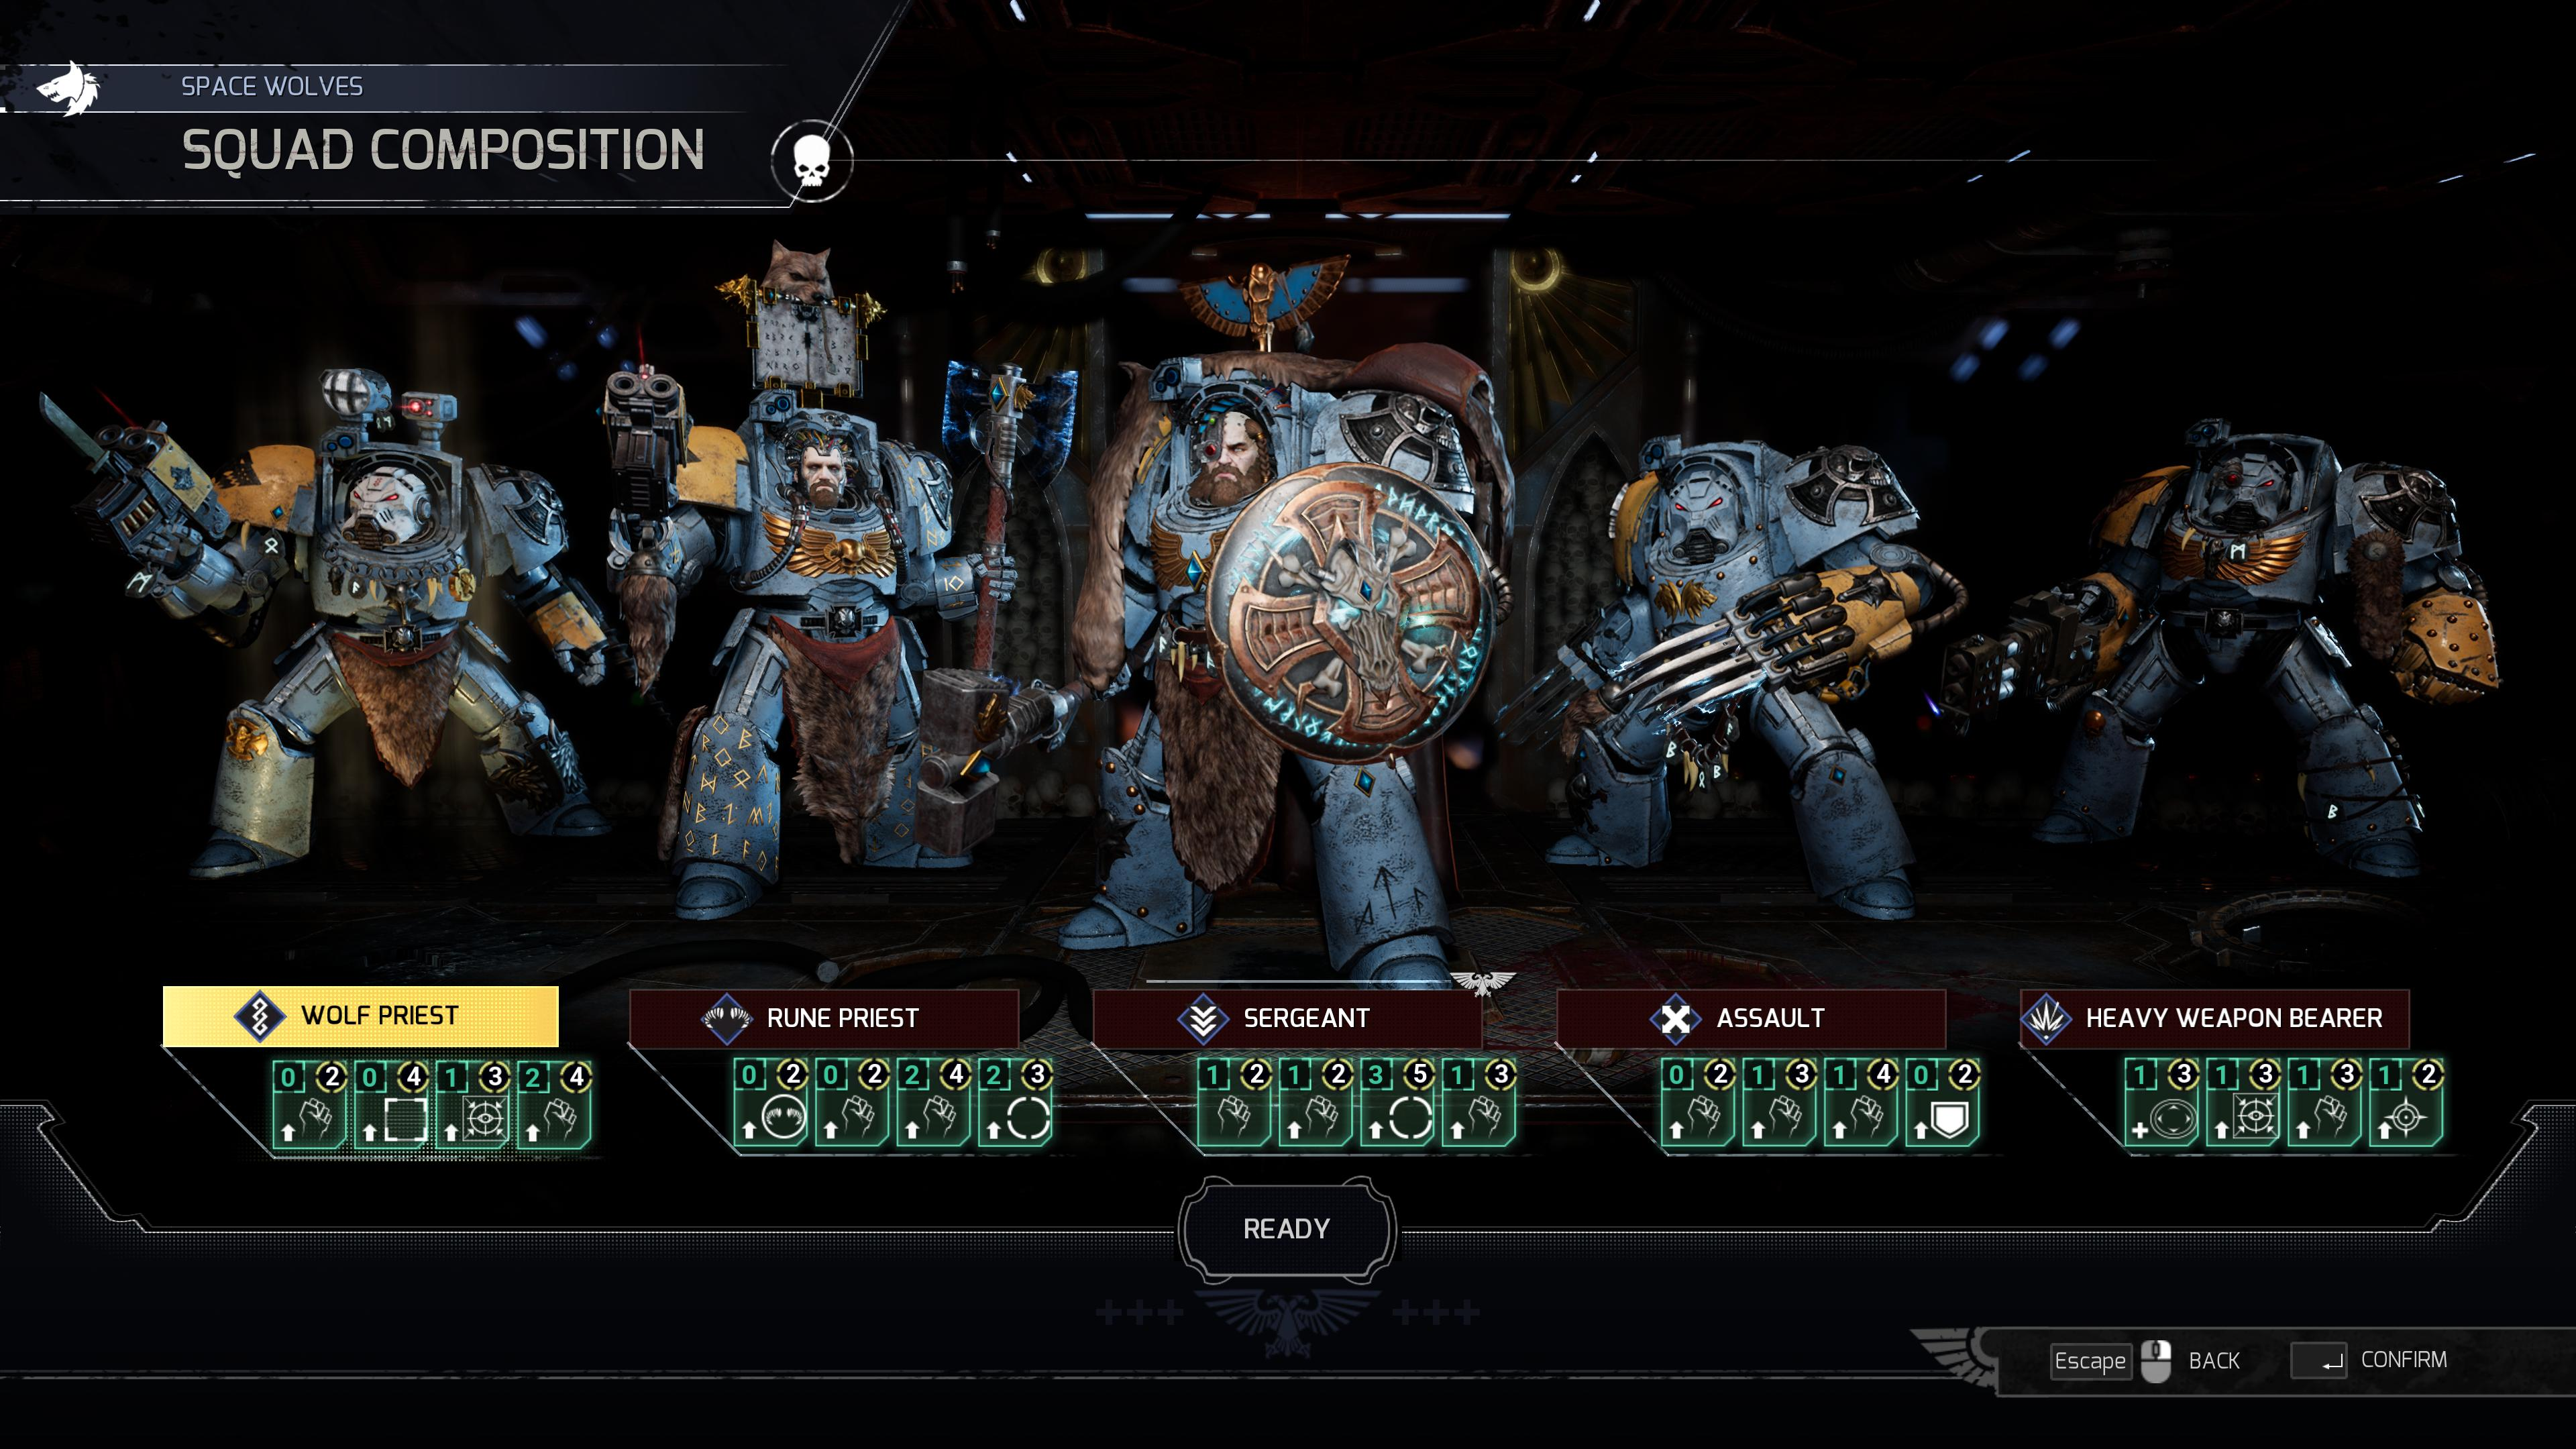 Warhammer 40K games are a dime a dozen, but Space Hulk: Tactics